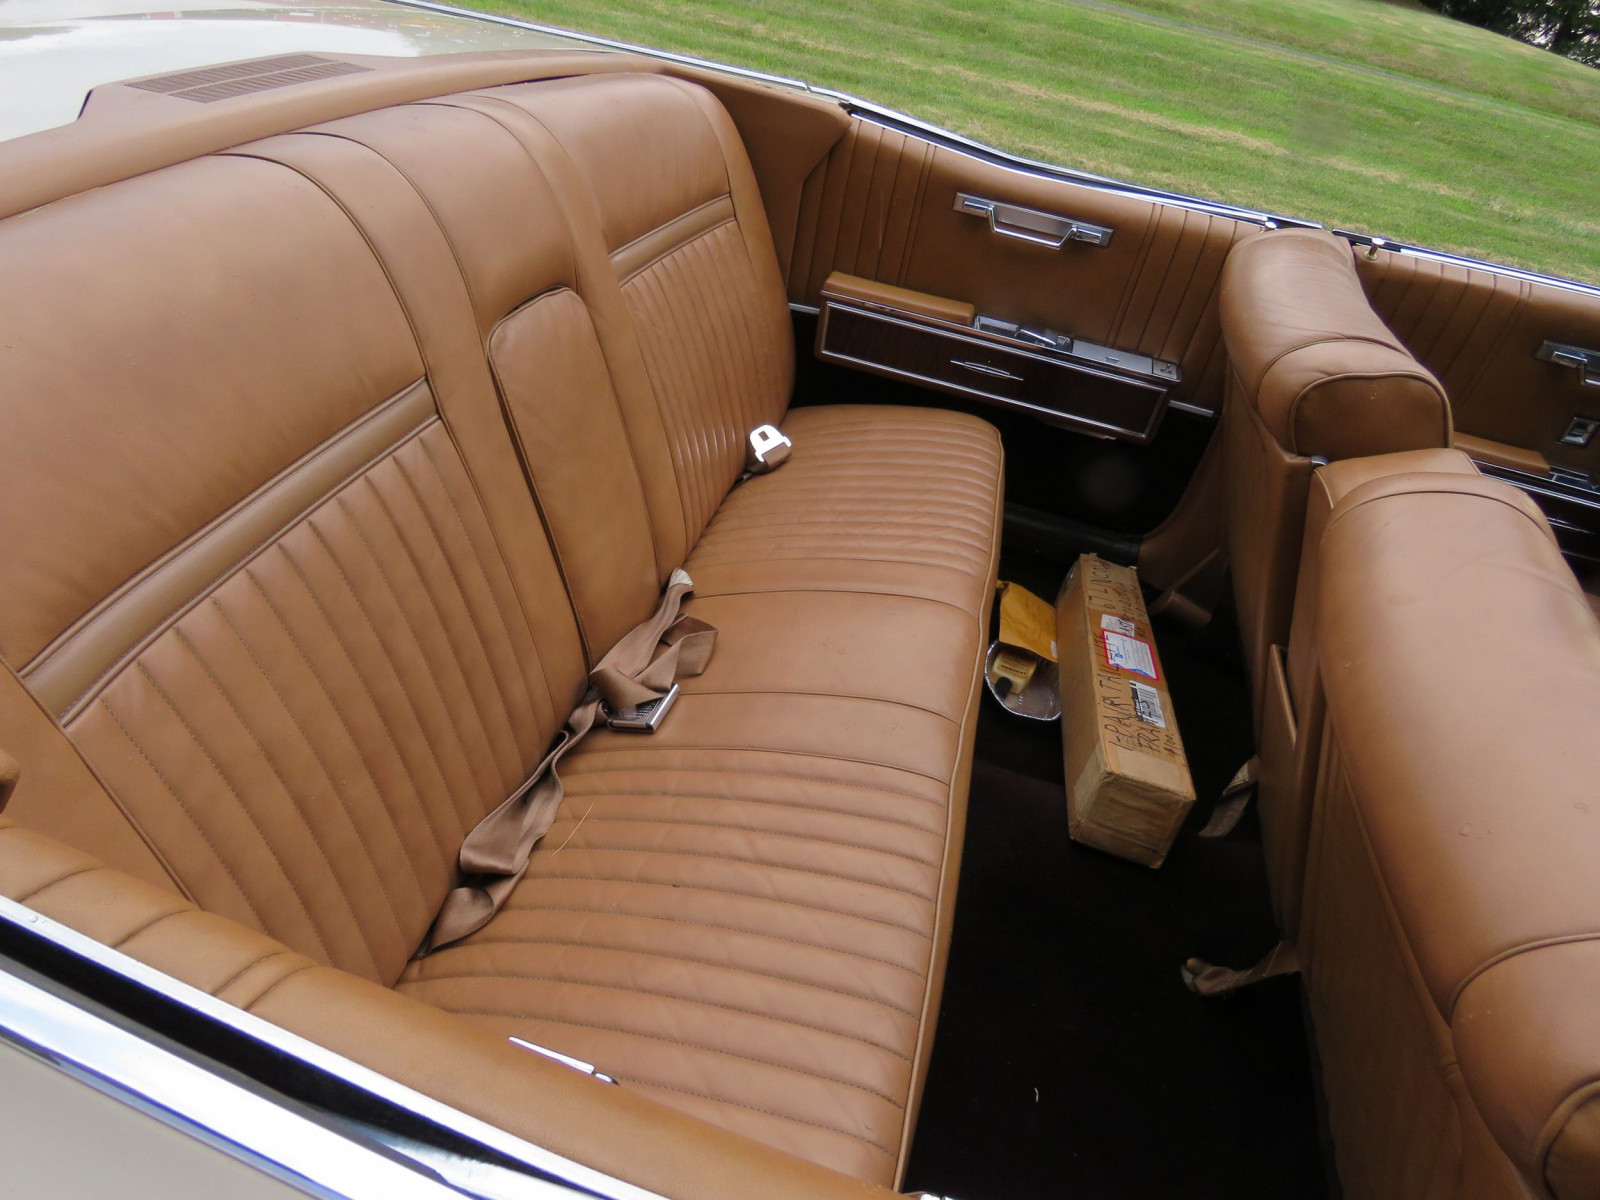 1967 Lincoln Continental 4dr Suicide Convertible - Image 14